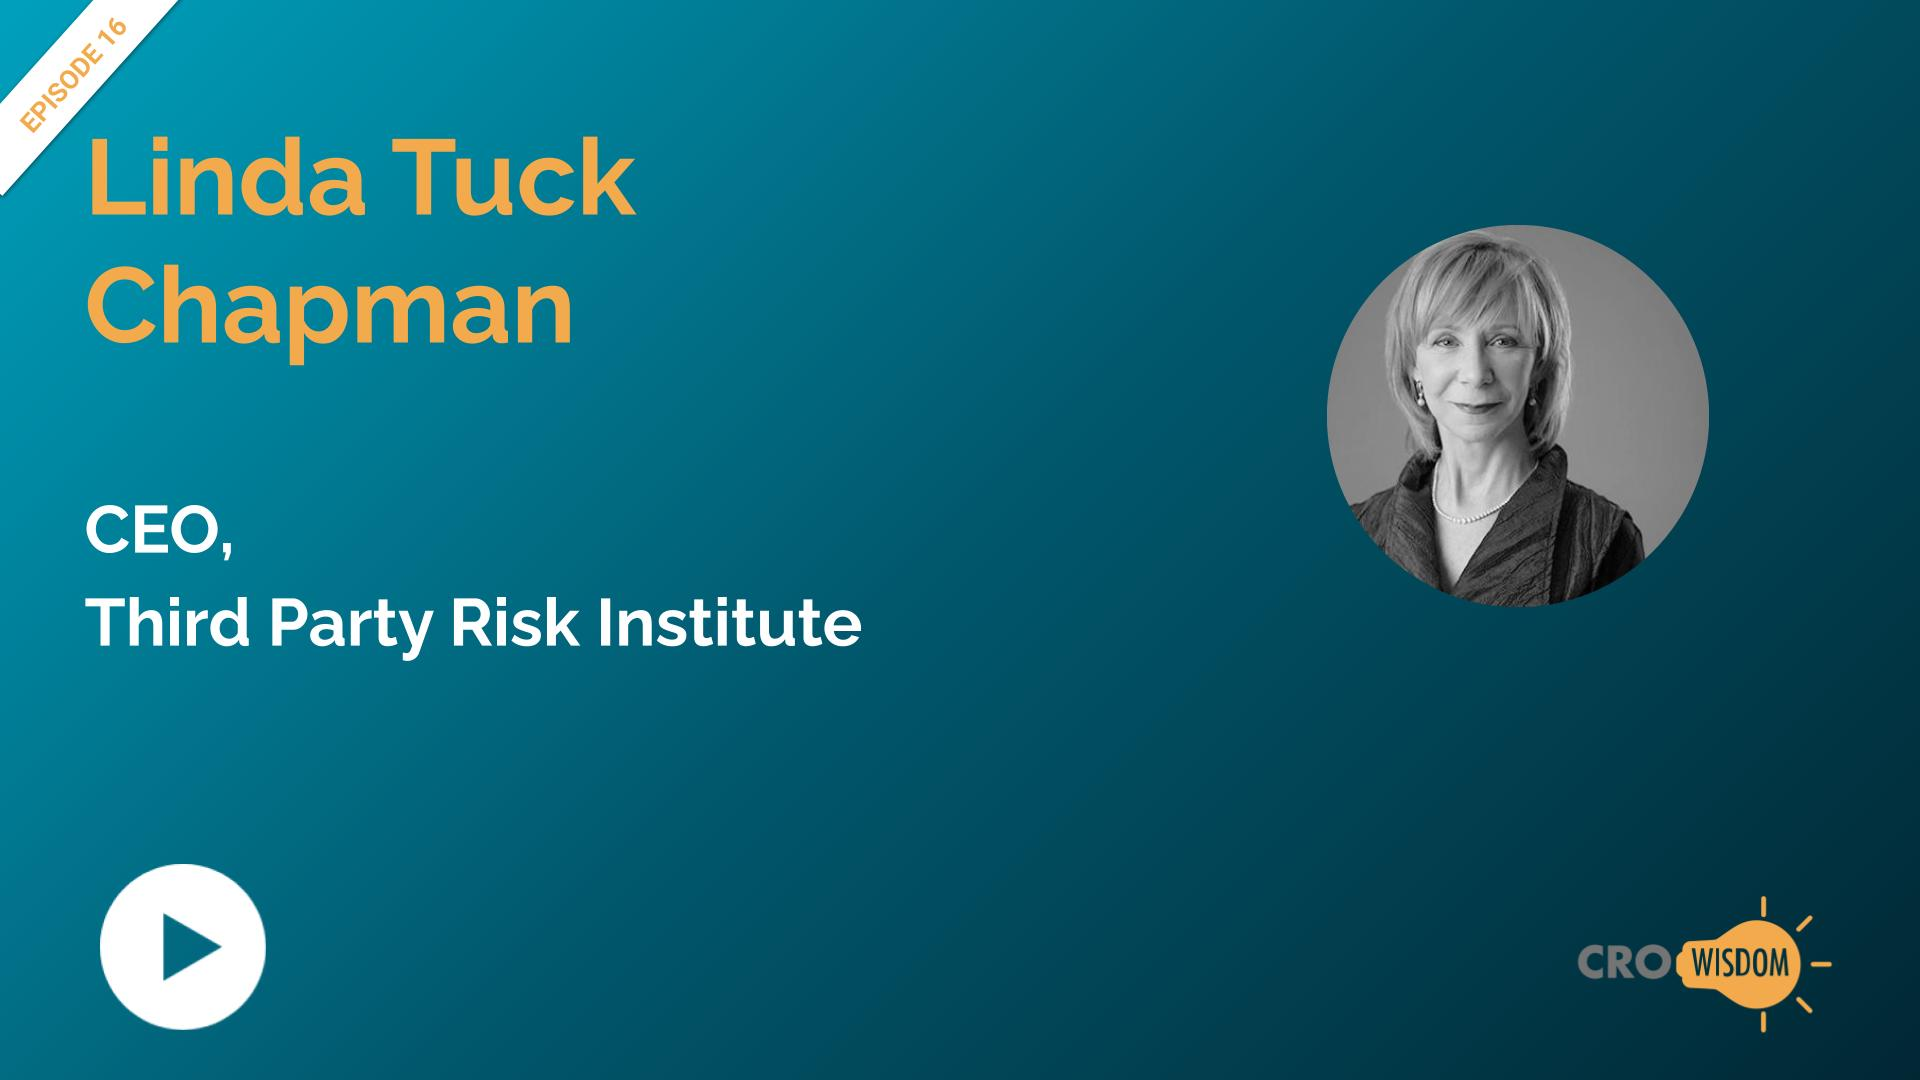 CRO Wisdom Episode 16 with Linda Tuck Chapman, CEO, Third Party Risk Institute